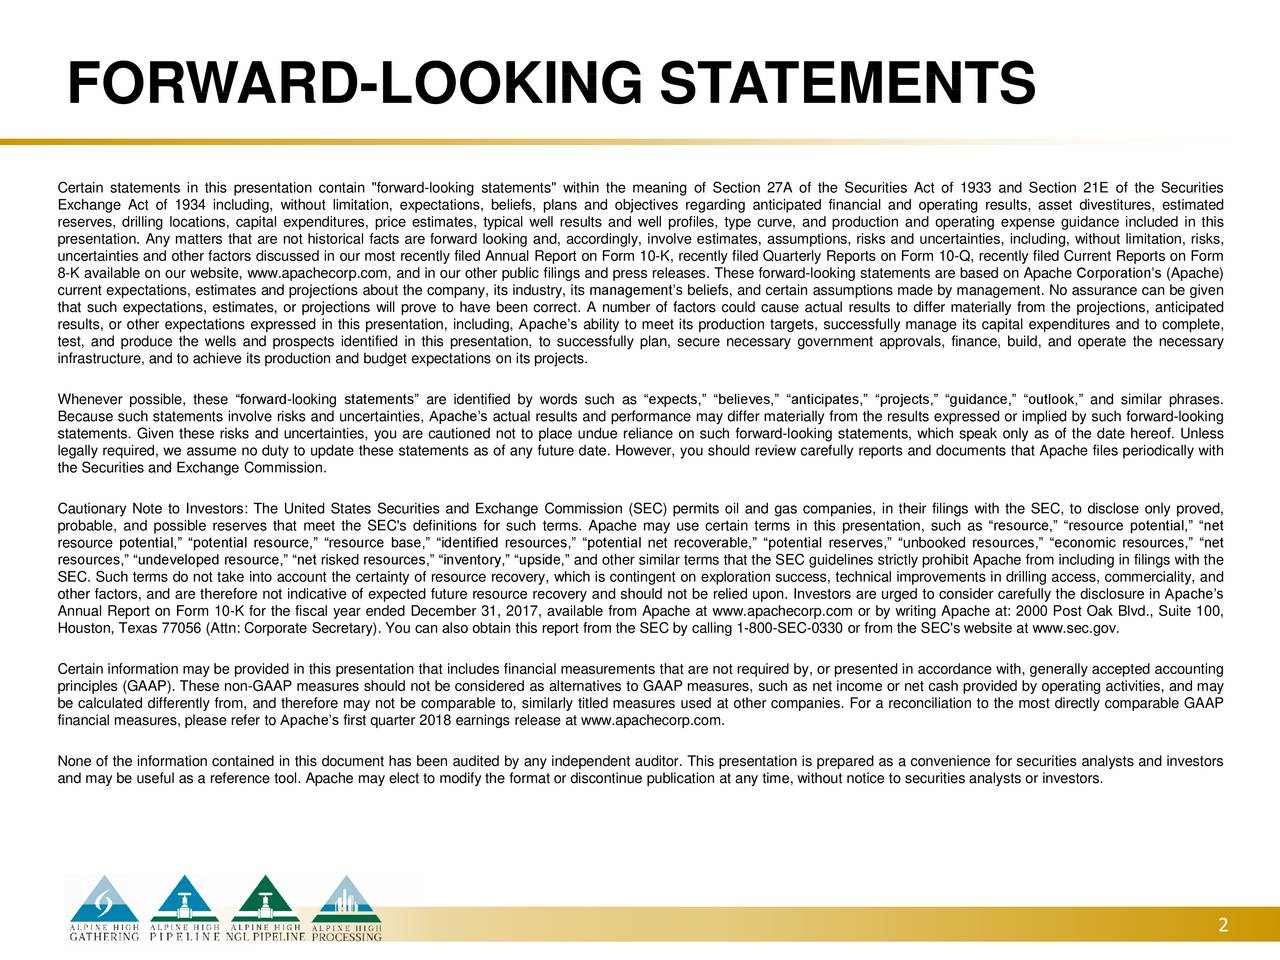 """Certain statements in this presentation contain """"forward-looking statements"""" within the meaning of Section 27A of the Securities Act of 1933 and Section 21E of the Securities Exchange Act of 1934 including, without limitation, expectations, beliefs, plans and objectives regarding anticipated financial and operating results, asset divestitures, estimated reserves, drilling locations, capital expenditures, price estimates, typical well results and well profiles, type curve, and production and operating expense guidance included in this presentation. Any matters that are not historical facts are forward looking and, accordingly, involve estimates, assumptions, risks and uncertainties, including, without limitation, risks, uncertainties and other factors discussed in our most recently filed Annual Report on Form 10-K, recently filed Quarterly Reports on Form 10-Q, recently filed Current Reports on Form 8-K available on our website, www.apachecorp.com, and in our other public filings and press releases. These forward-looking statements are based on Apache Corporation's (Apache) current expectations, estimates and projections about the company, its industry, its management's beliefs, and certain assumptions made by management. No assurance can be given that such expectations, estimates, or projections will prove to have been correct. A number of factors could cause actual results to differ materially from the projections, anticipated results, or other expectations expressed in this presentation, including, Apache's ability to meet its production targets, successfully manage its capital expenditures and to complete, test, and produce the wells and prospects identified in this presentation, to successfully plan, secure necessary government approvals, finance, build, and operate the necessary infrastructure, and to achieve its production and budget expectations on its projects. Whenever possible, these """"forward-looking statements"""" are identified by words such as """"expects,"""" """""""